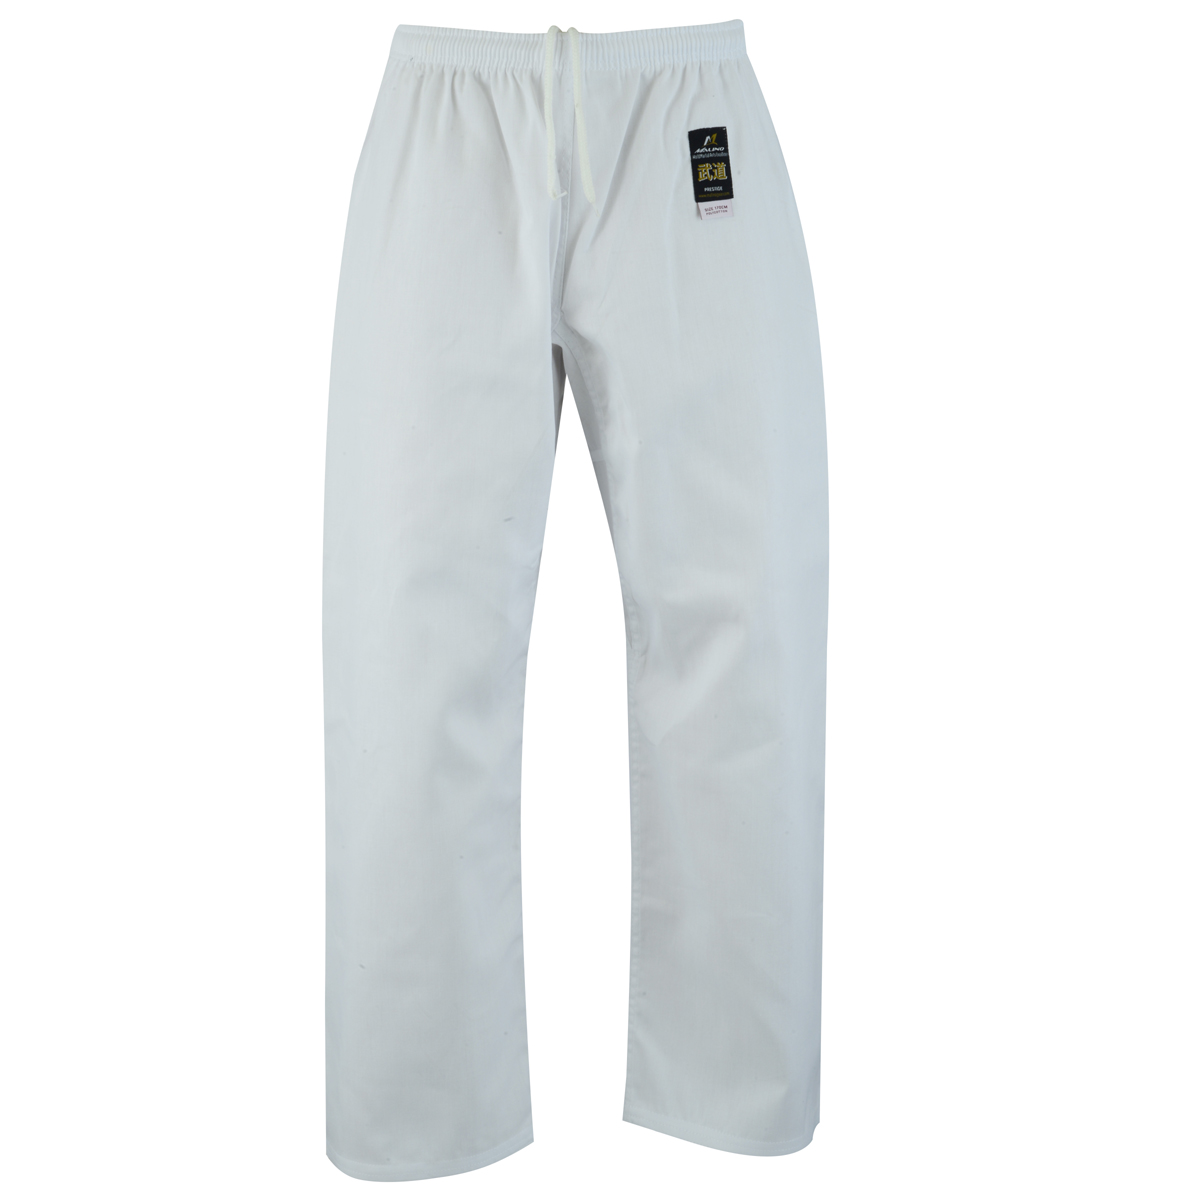 Malino Kids Student Karate Trousers PC White - 6oz